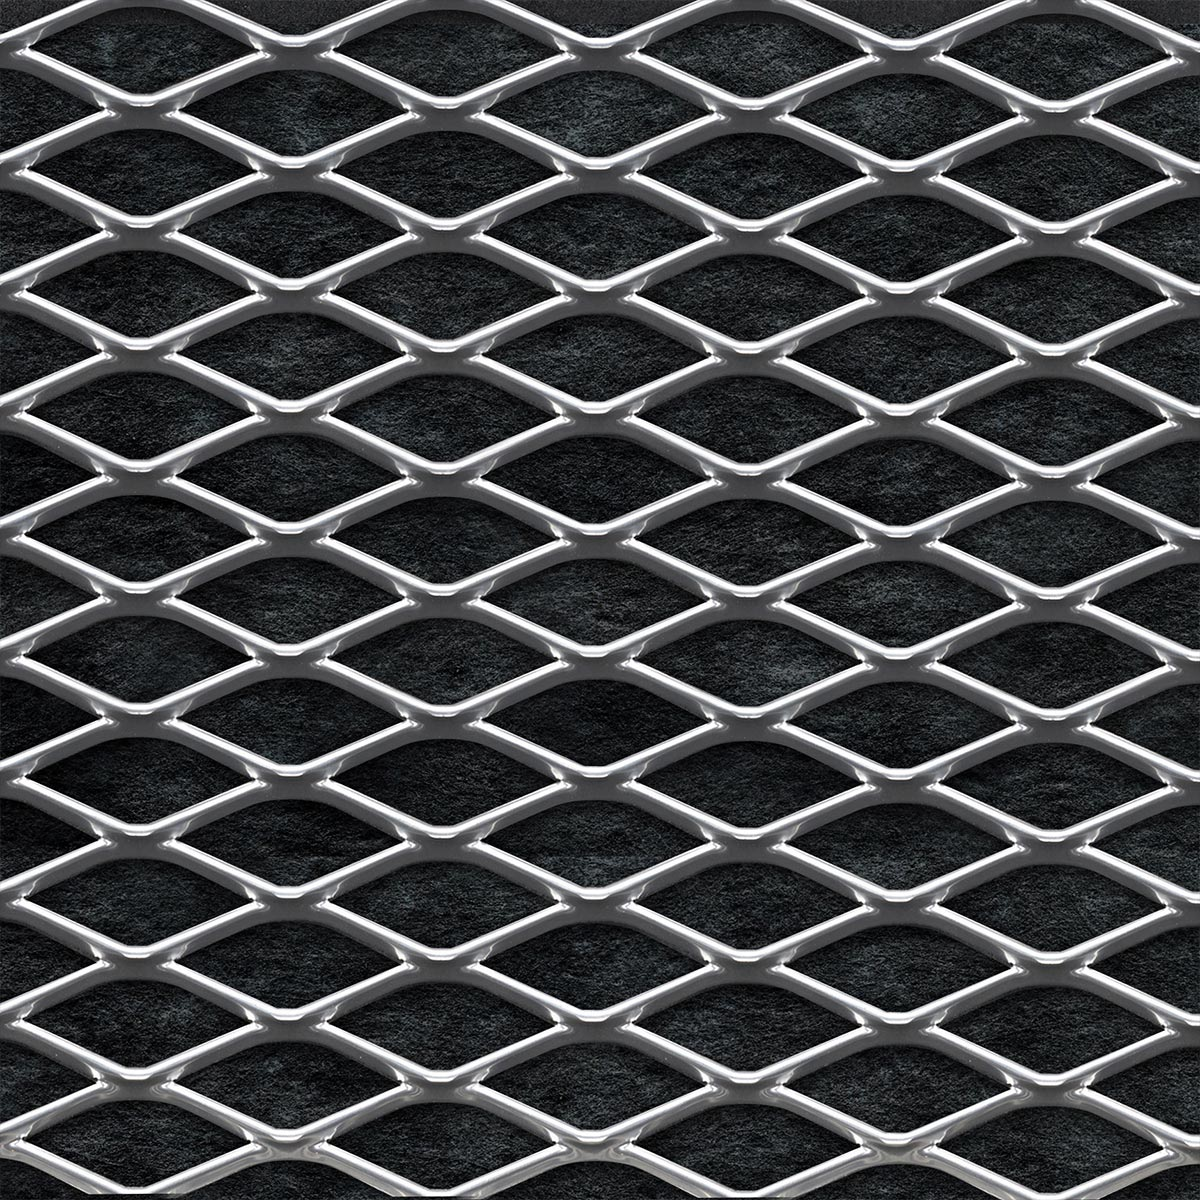 Sonex squareline acoustic ceiling tile acoustical solutions sonex squareline acoustic ceiling tile chrome shown on black background dailygadgetfo Images